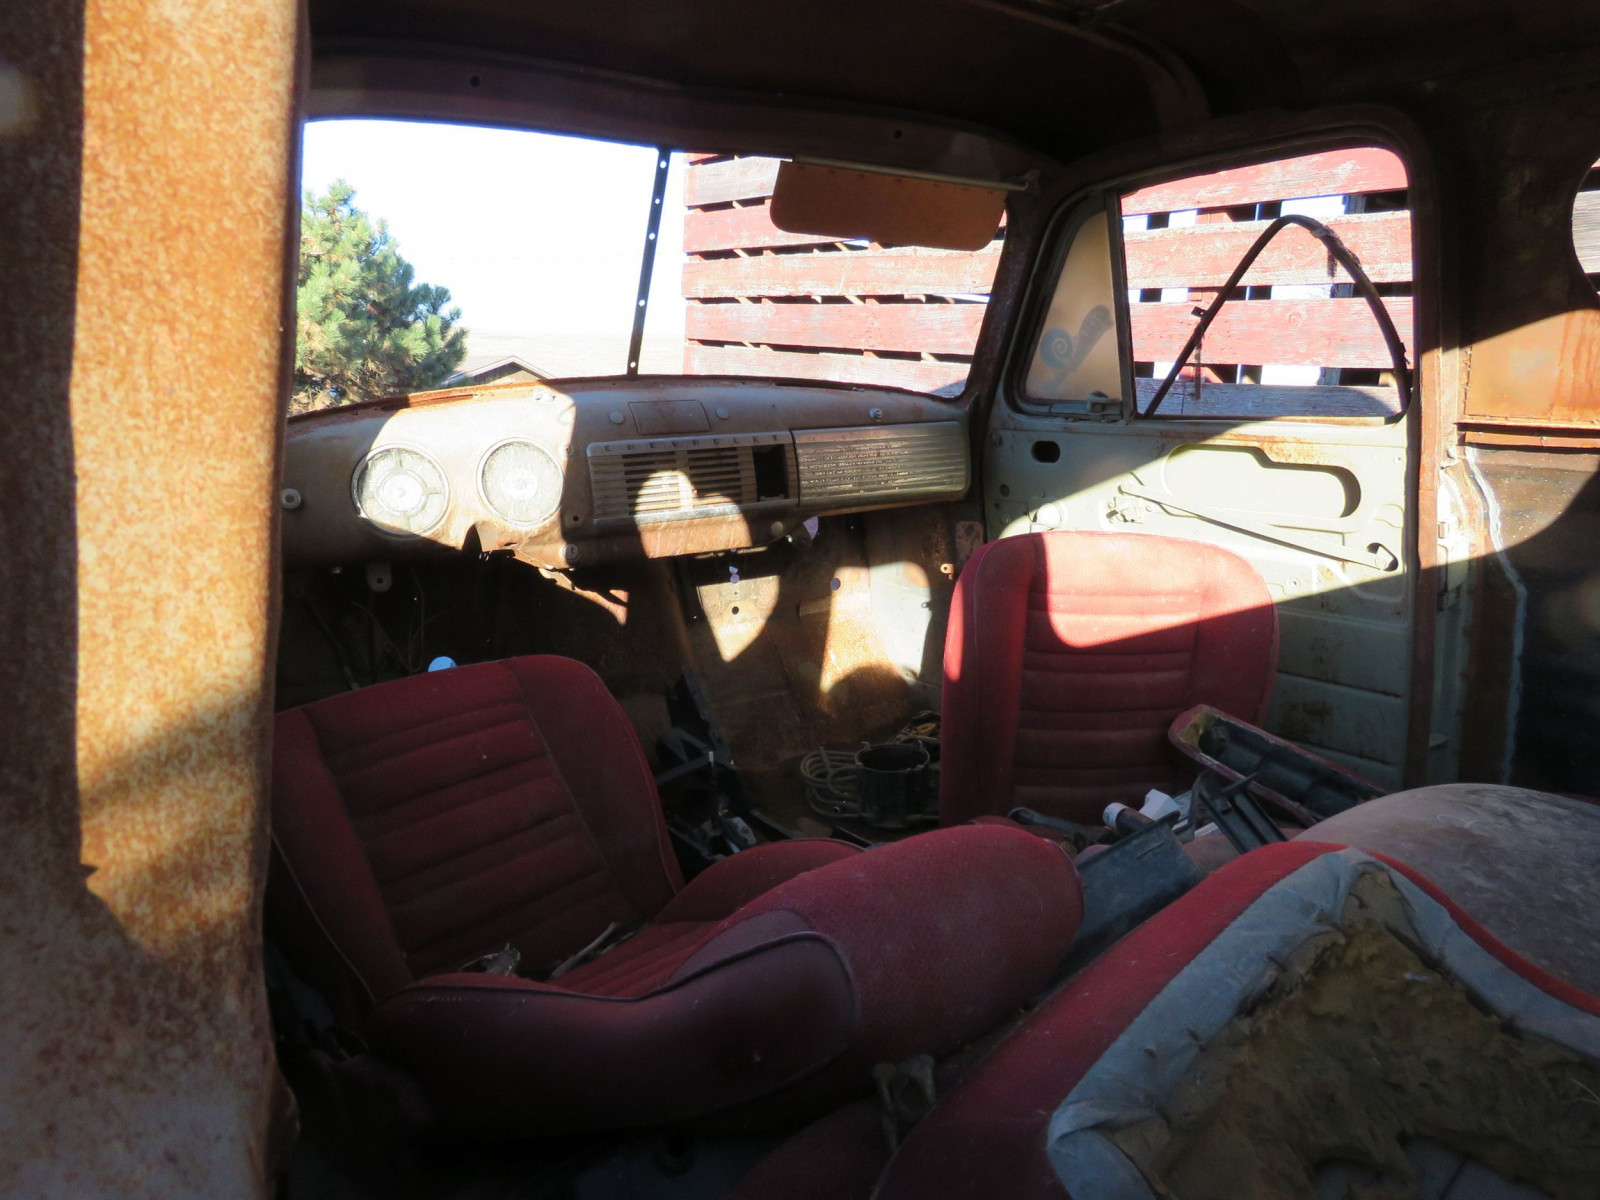 1949 Chevrolet 5 Window Cab Pickup Project - Image 7